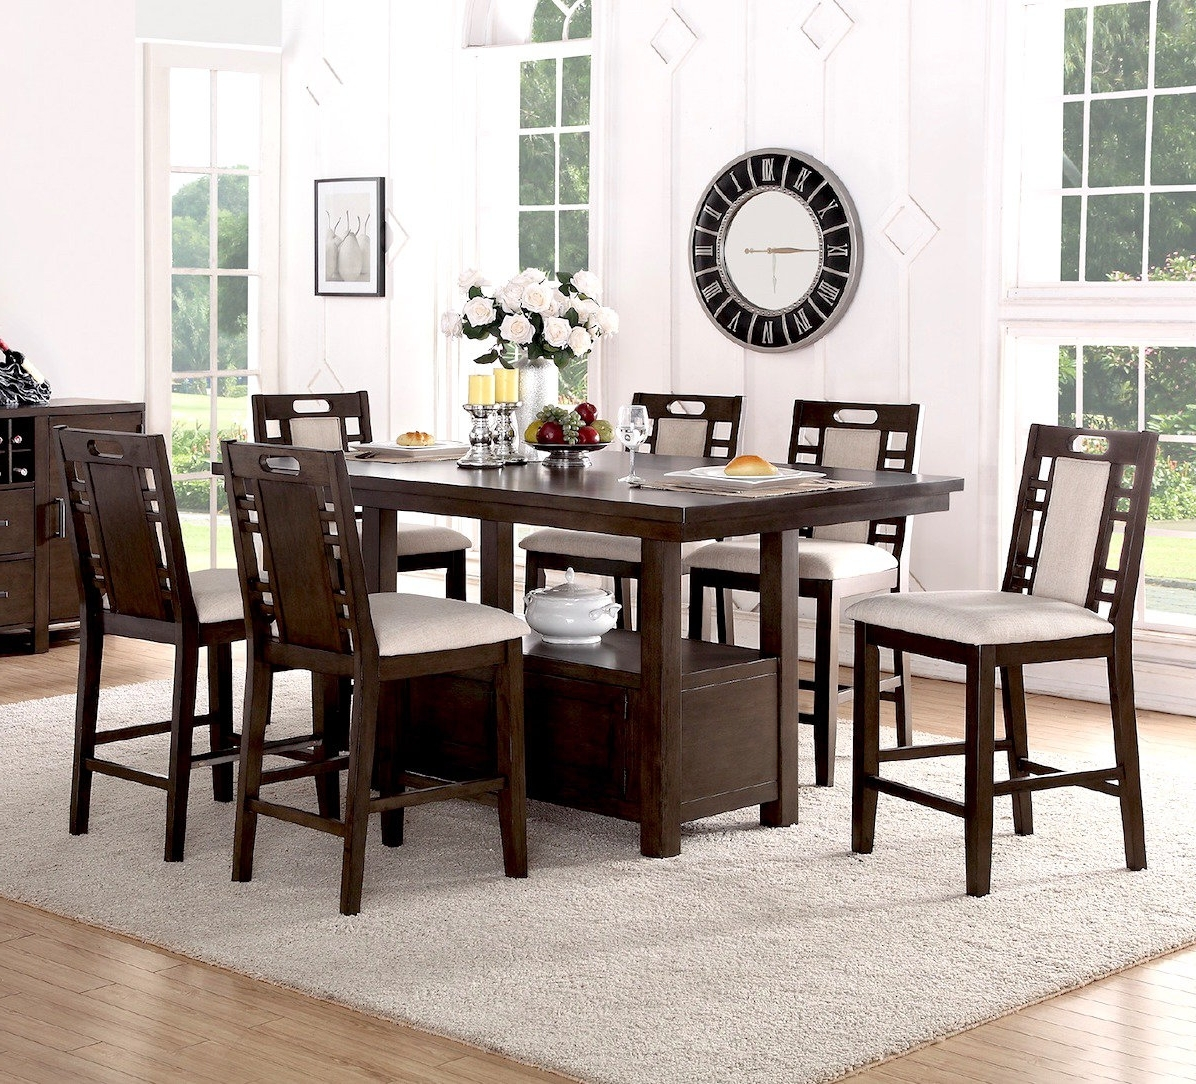 Preferred Candice Ii 7 Piece Extension Rectangle Dining Sets With Regard To Winston Porter Nika 7 Piece Counter Height Dining Set & Reviews (View 14 of 25)